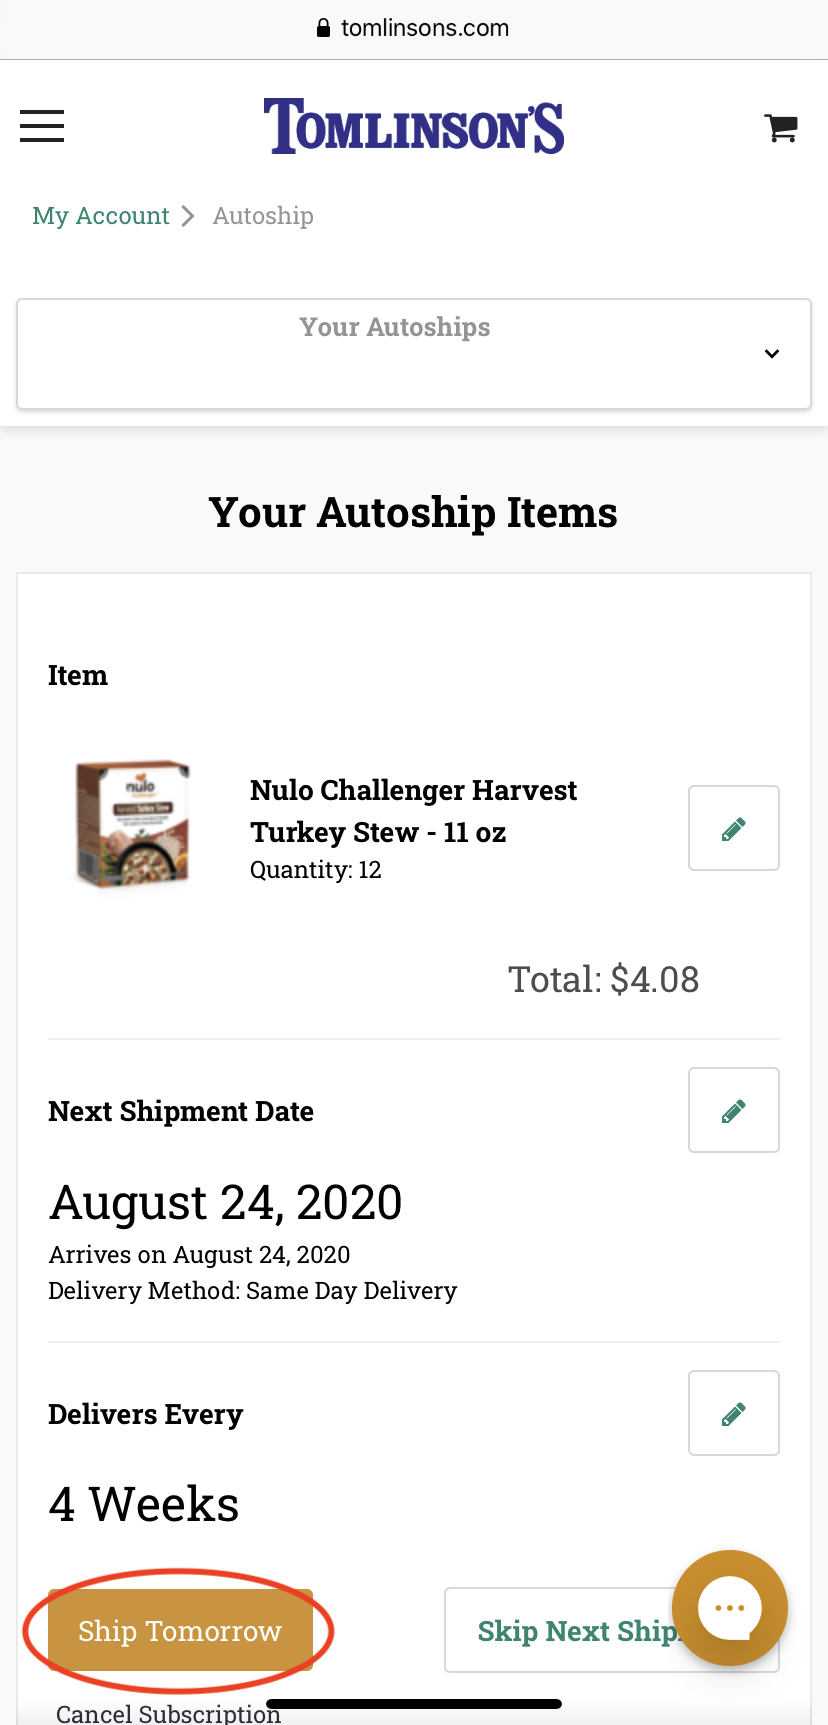 Shipping Your Autoship Tomorrow on Mobile